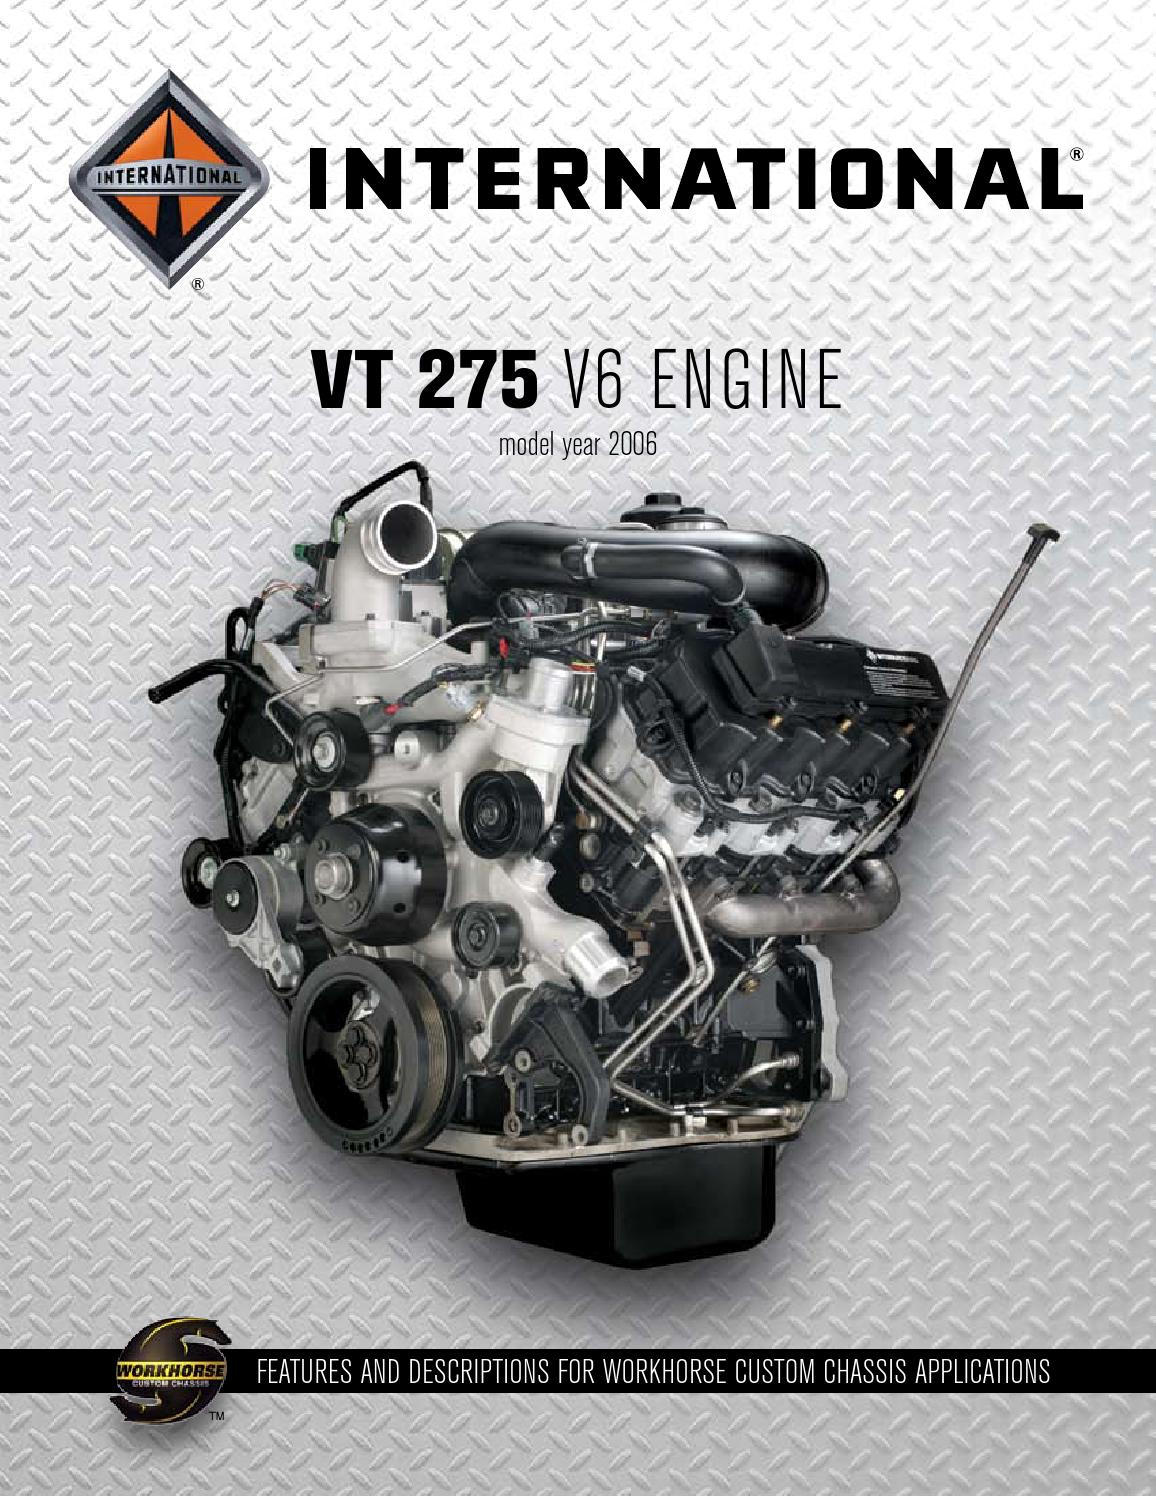 international vt 275 2006 engine catalog 4 20 06 by